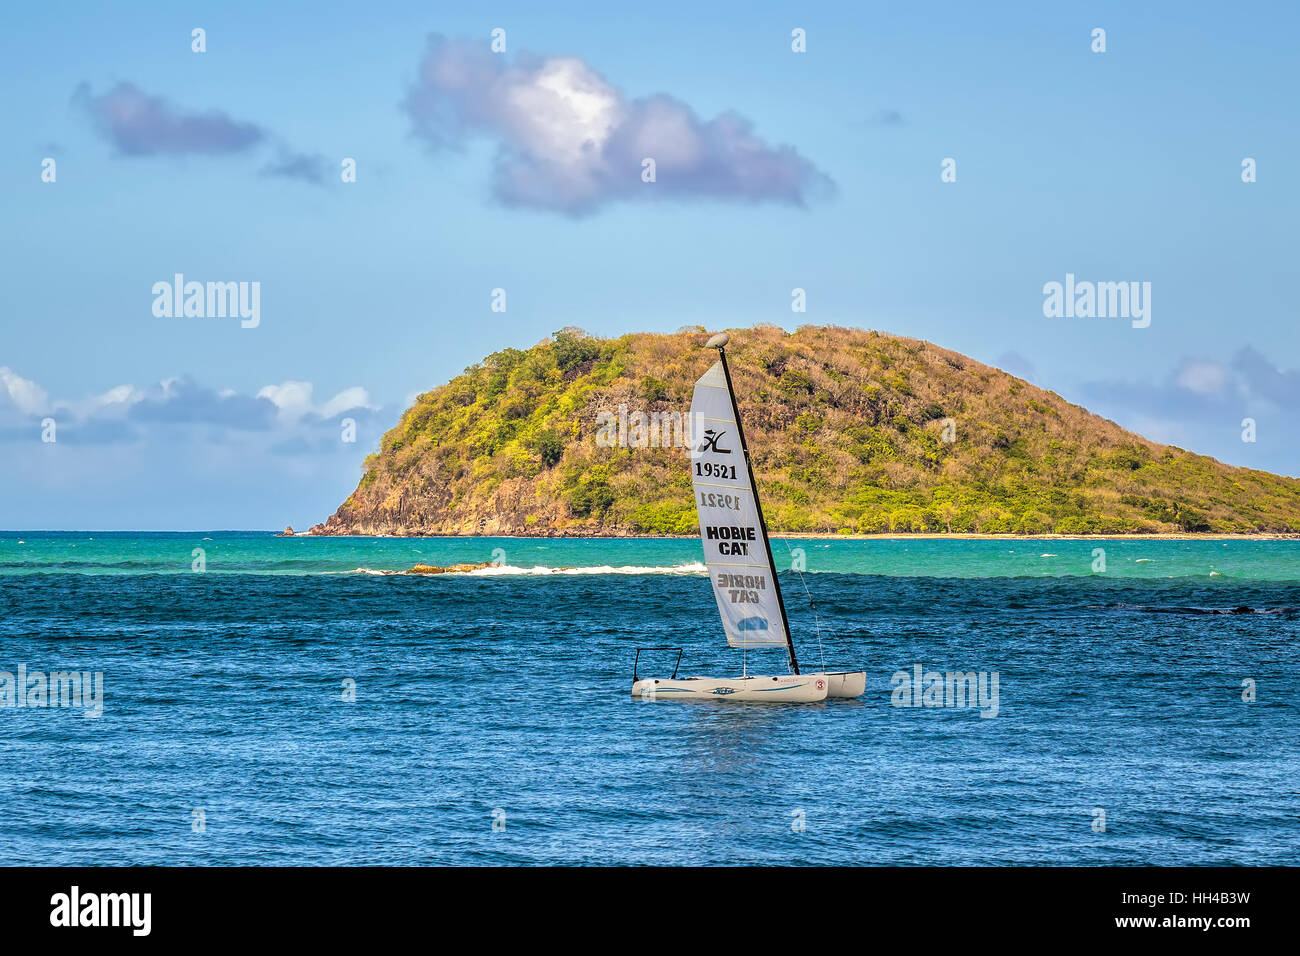 Tiny Island Off Guadeloupe West Indies - Stock Image